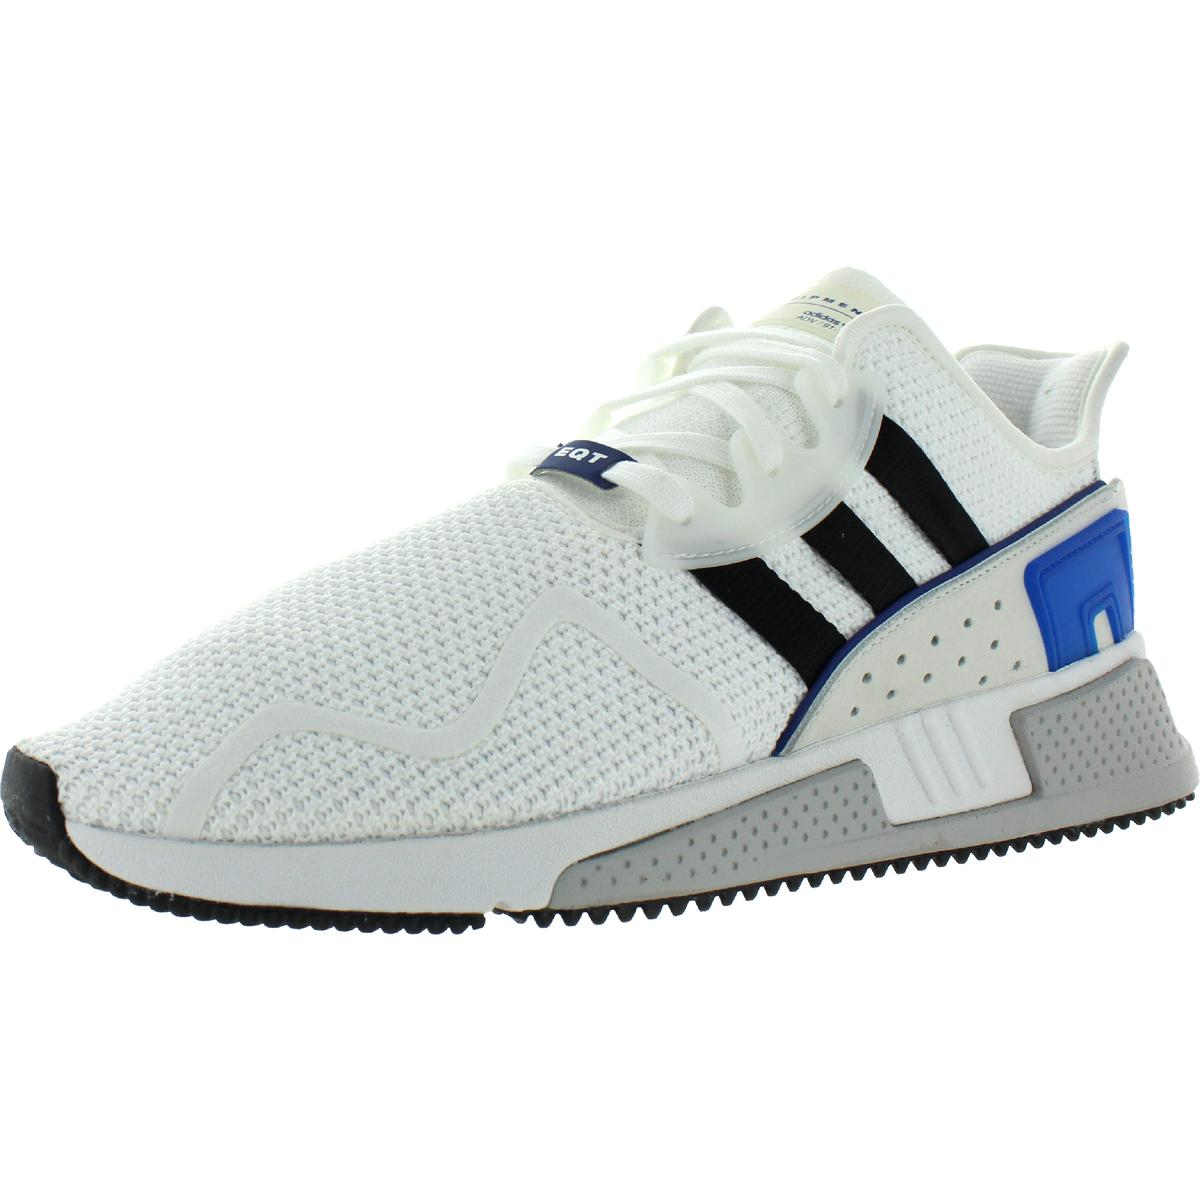 Details about adidas Originals Mens EQT Cushion ADV Trainer Athletic Shoes Sneakers BHFO 5282